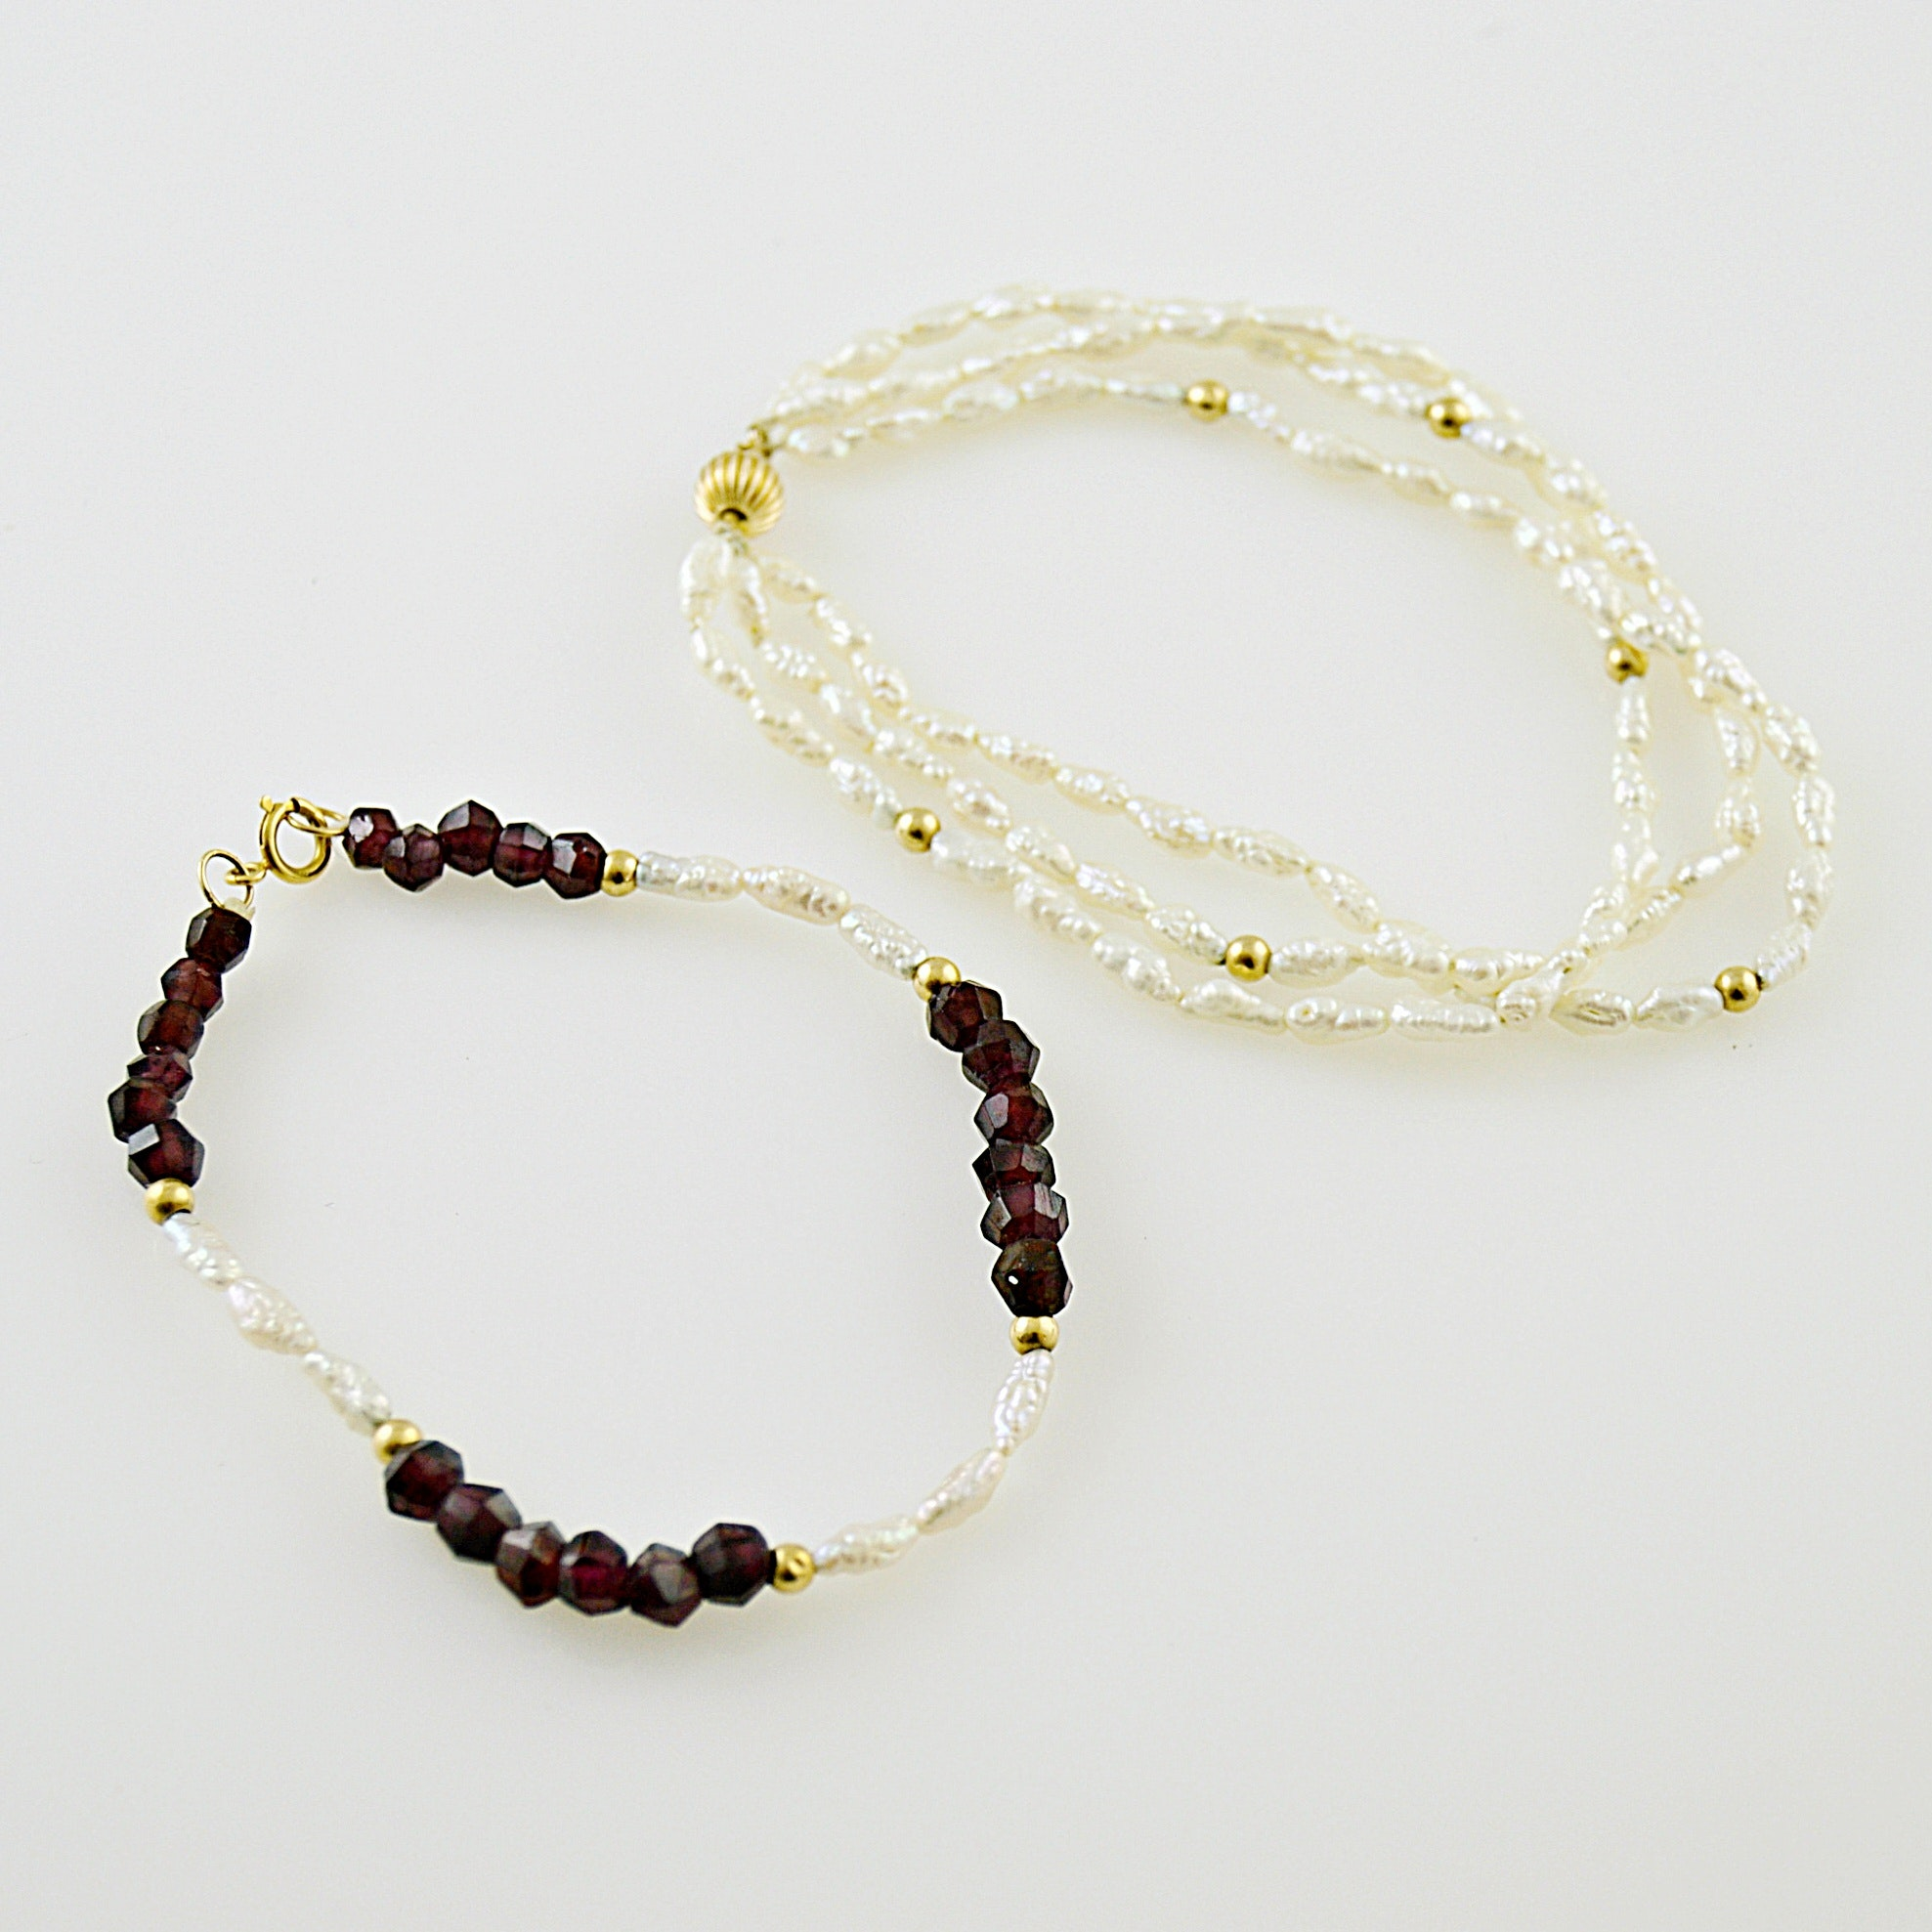 Two 14K Gold and Baroque Pearl Bracelets, One with Garnets